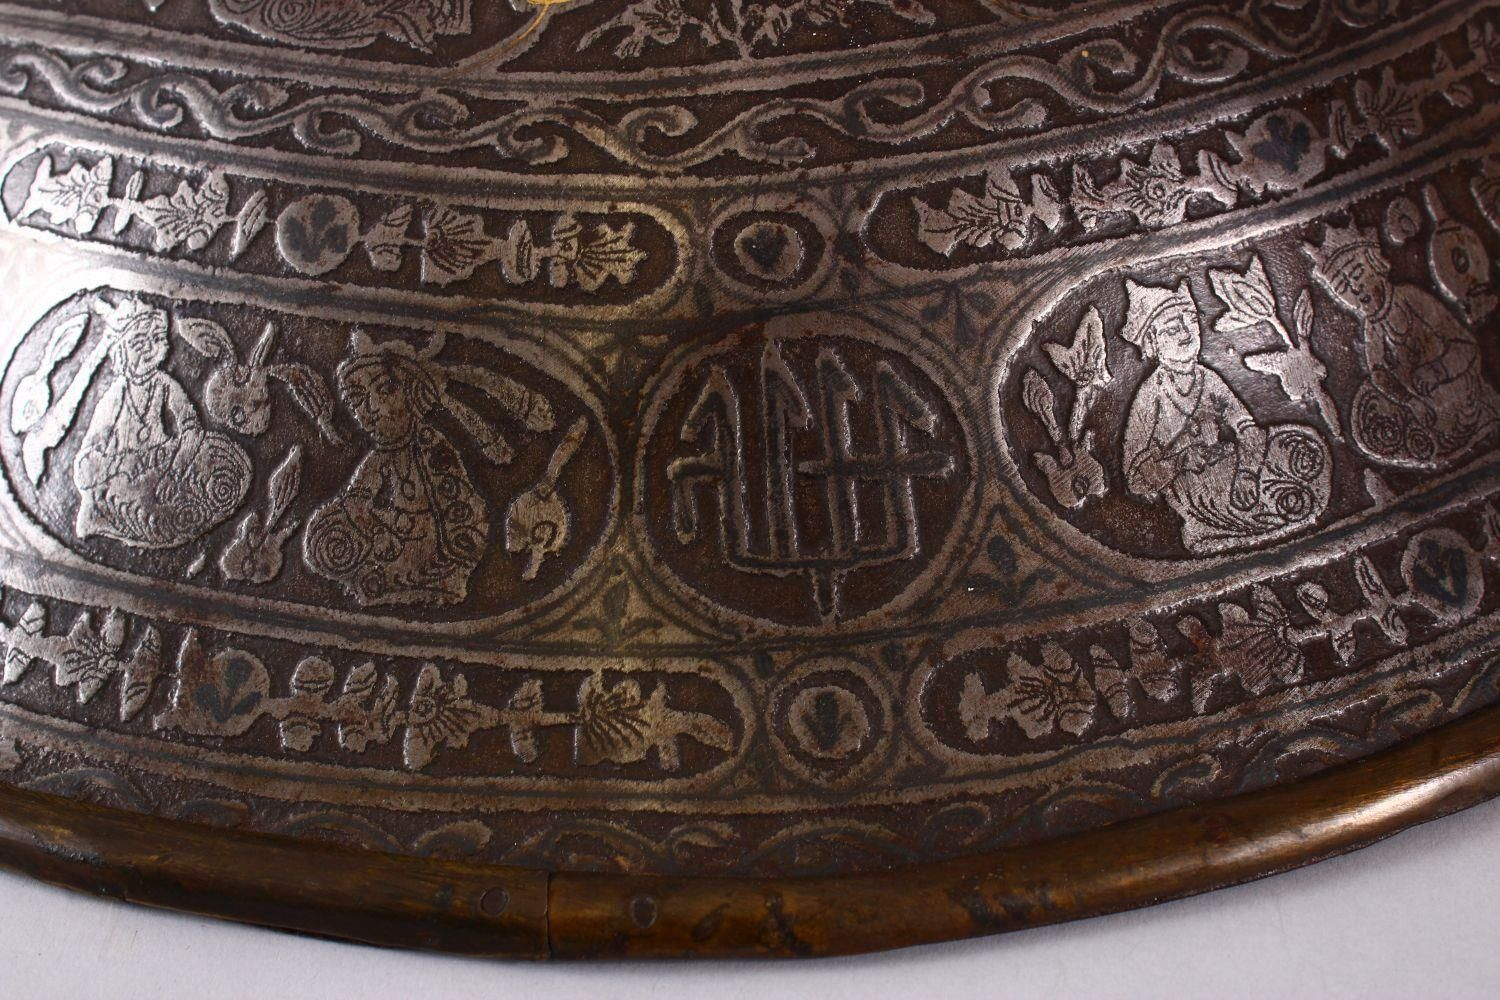 A LARGE 19TH CENTURY PERSIAN GILT DECORATED STEEL SHIELD, with carved decoration of figures, bands - Image 8 of 12